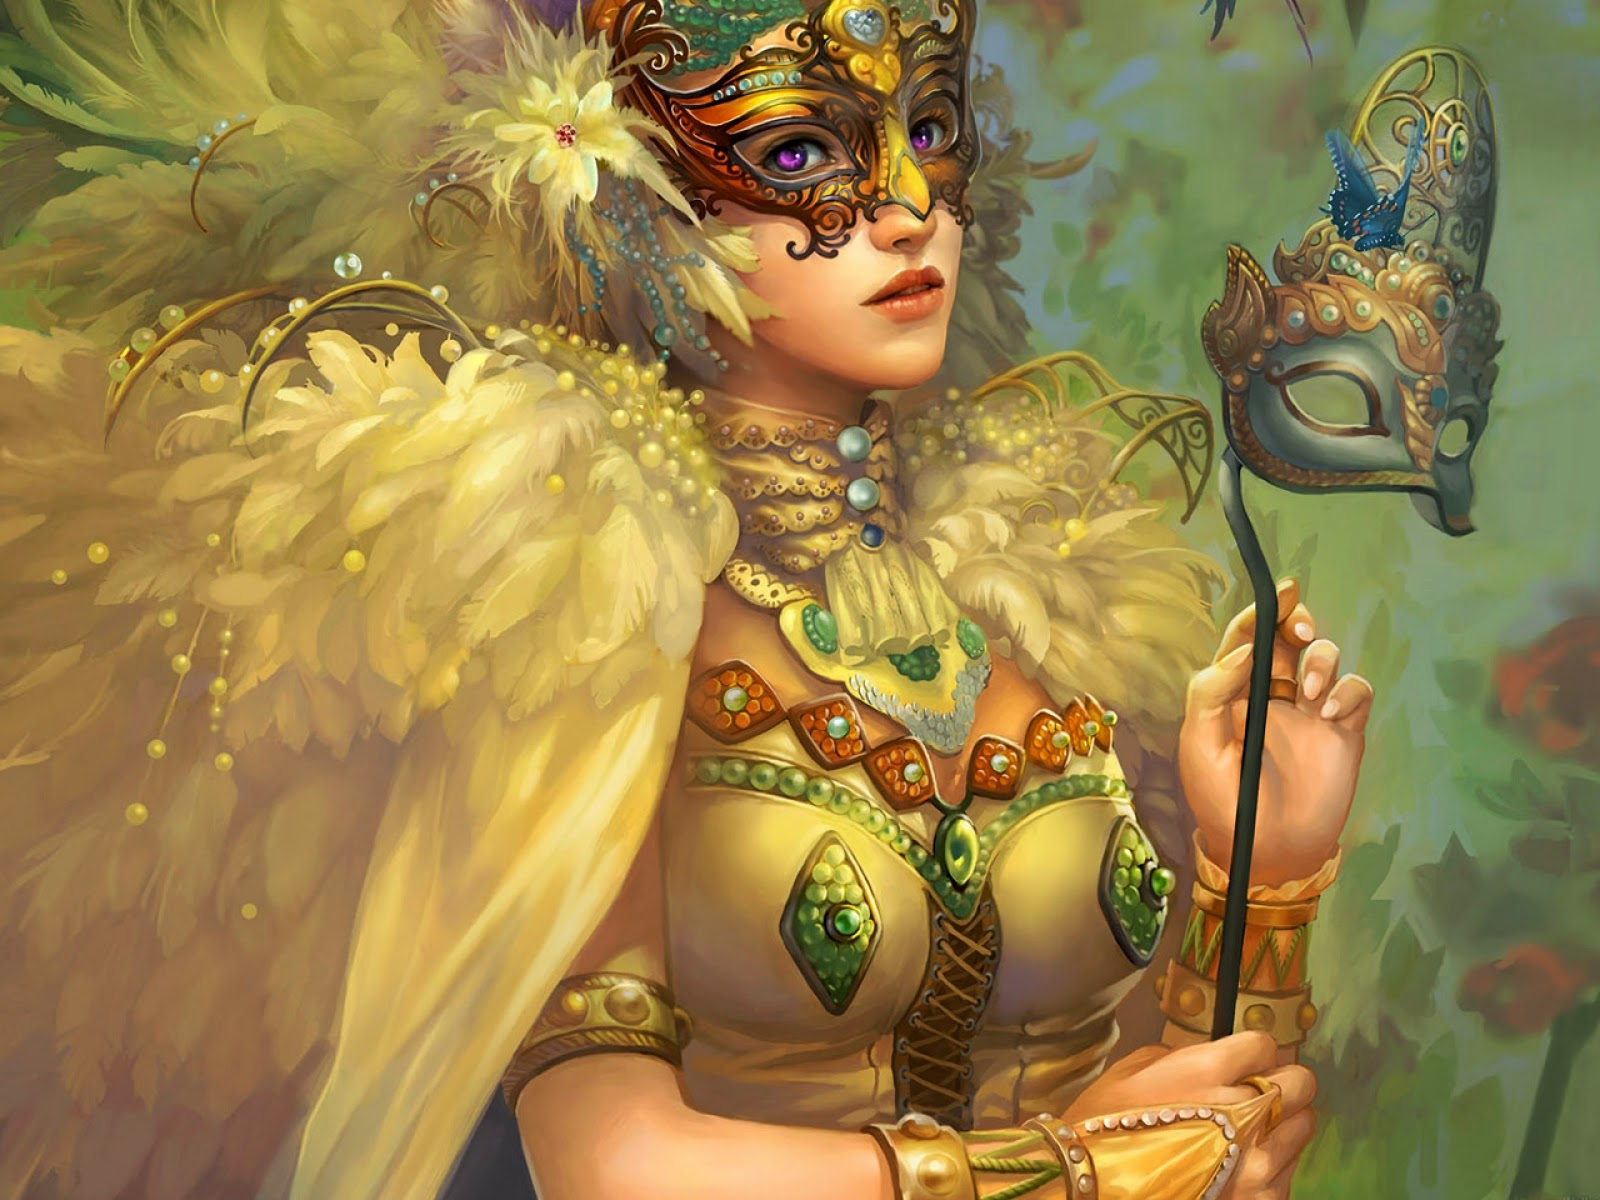 3D Fantasy Girls Hd Wallpapers  Awesome Wallpapers-1410